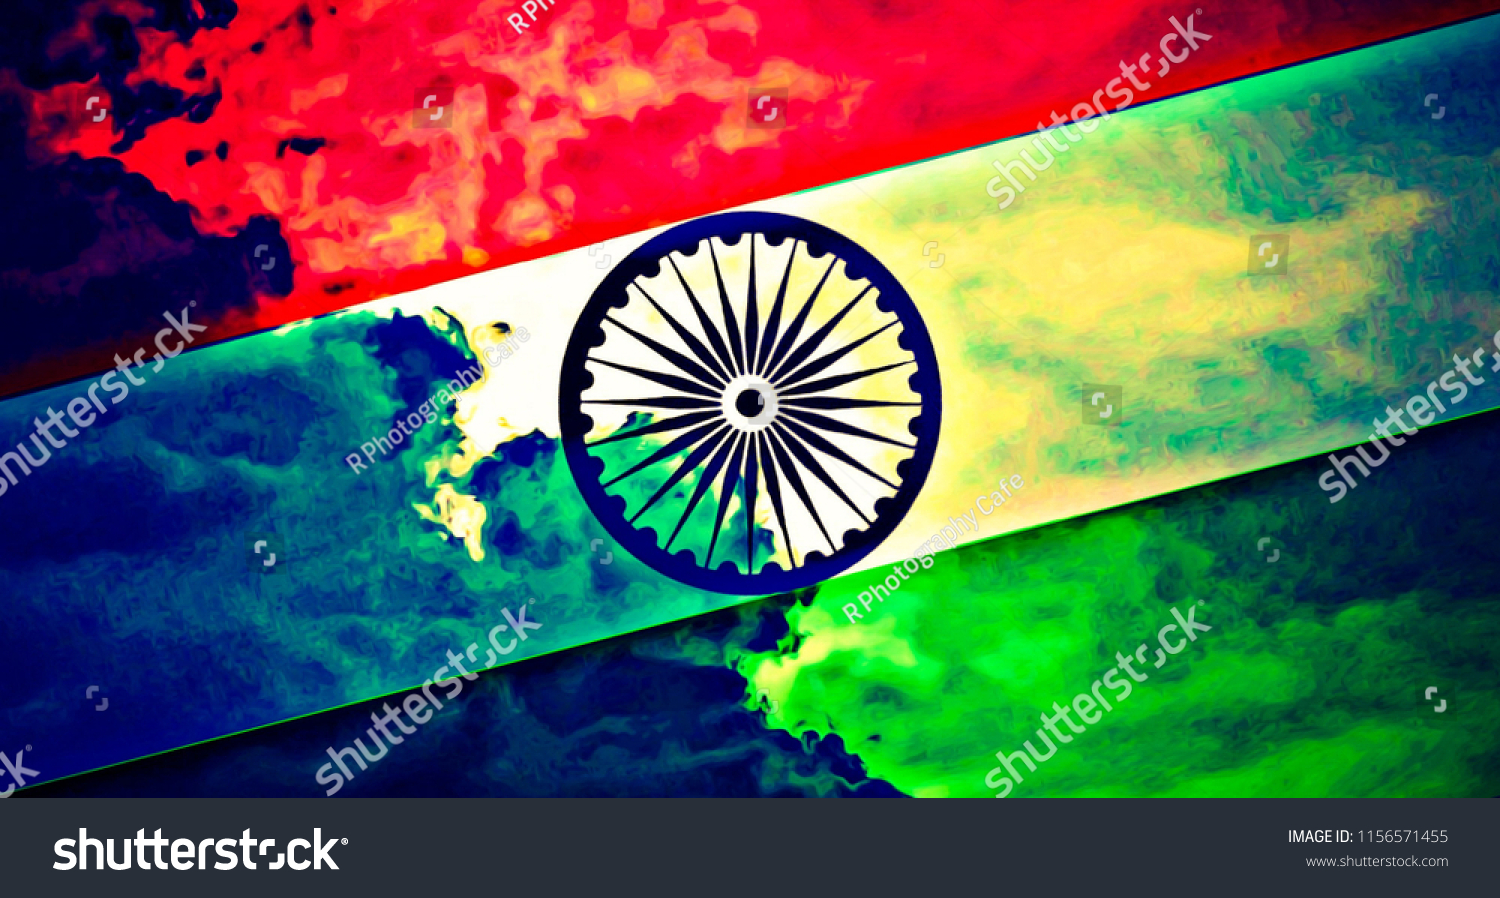 indian flag hd wallpaper stock illustration 1156571455 - shutterstock